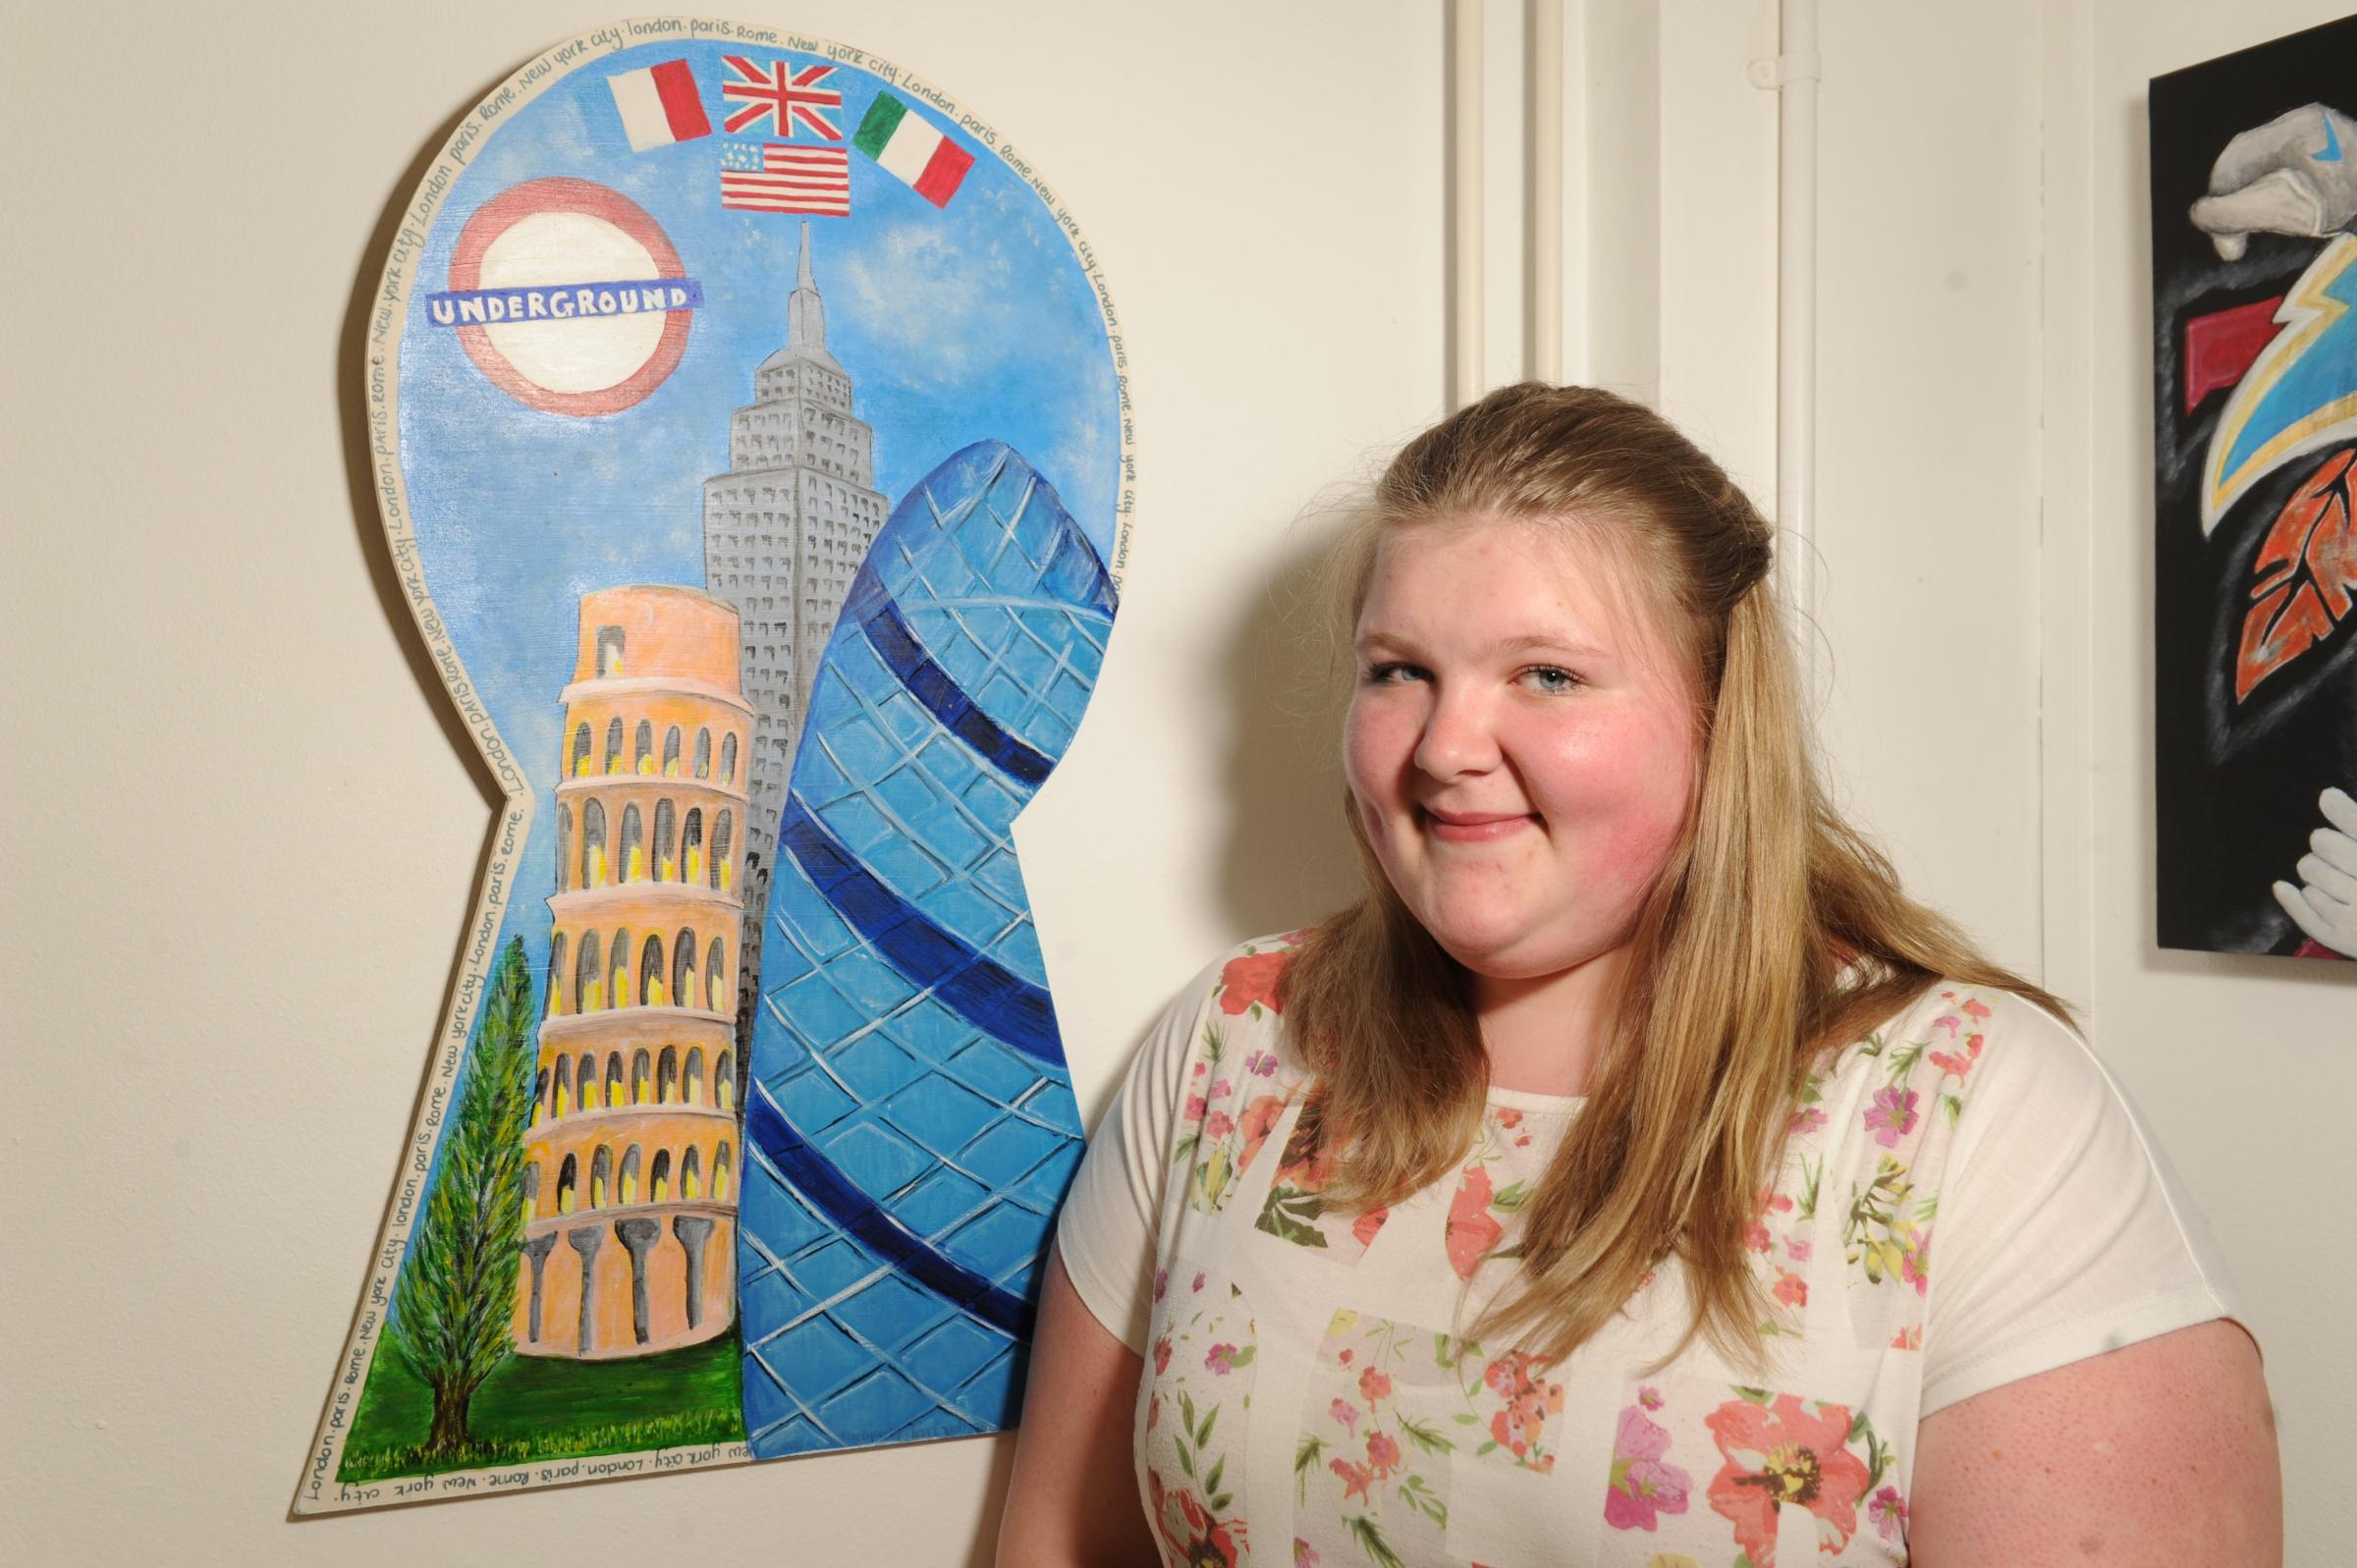 Cwmbran students' artwork goes on display